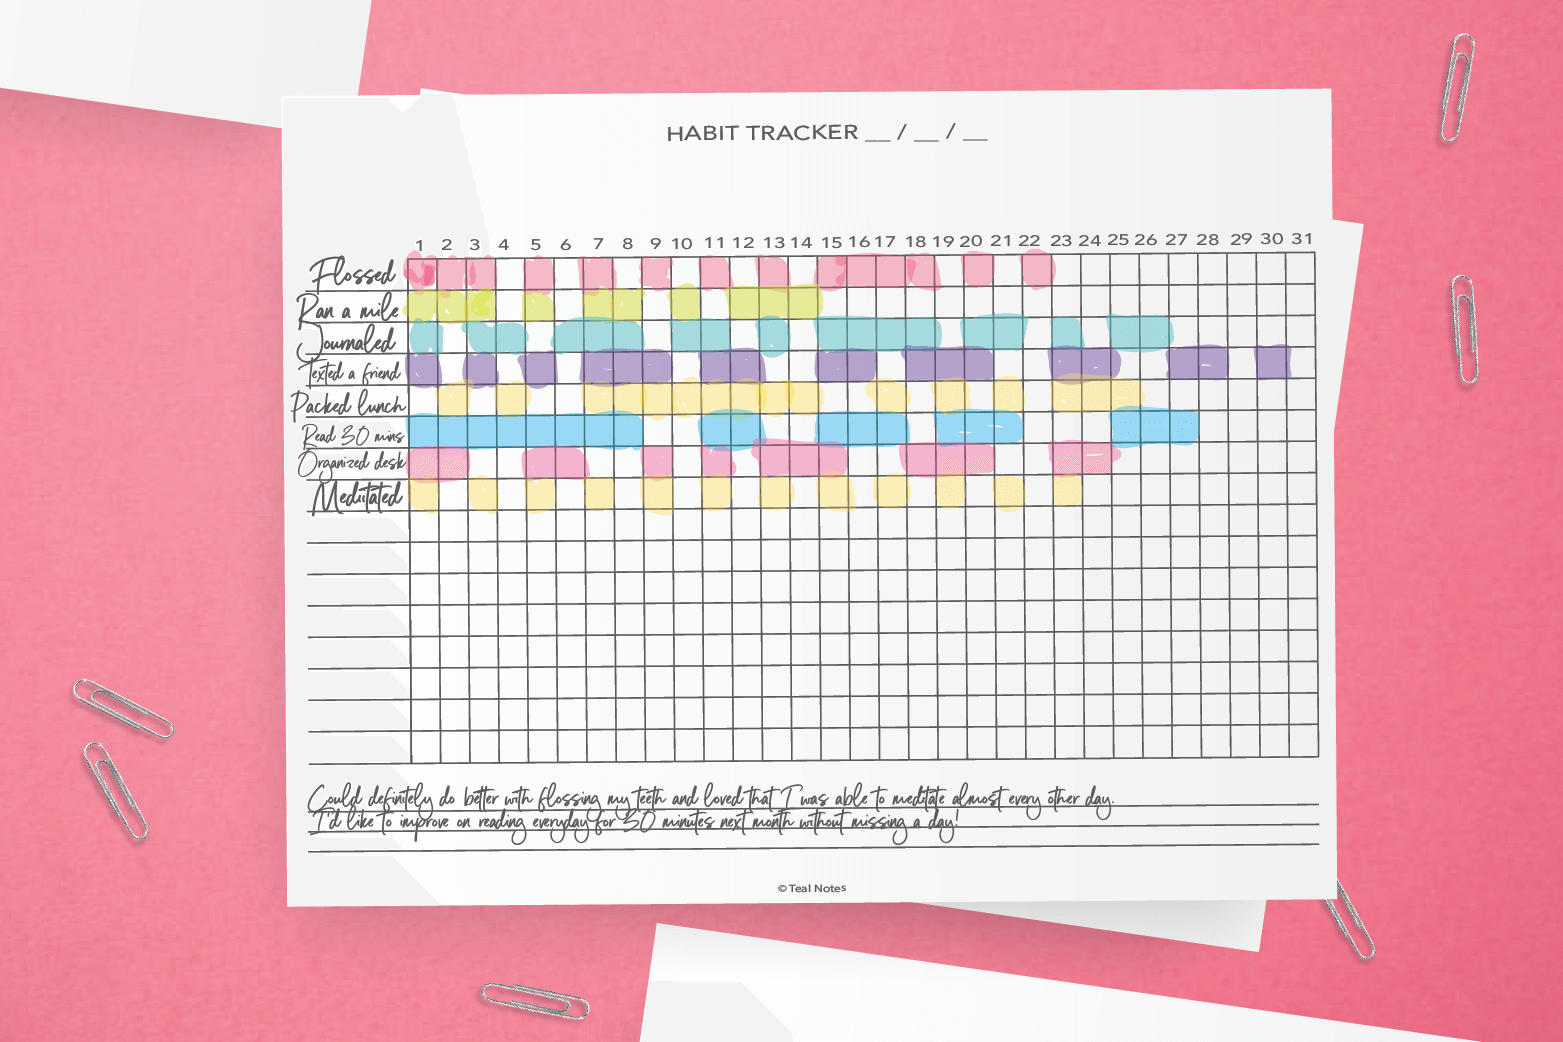 photograph about Free Printable Habit Tracker identify Cost-free Printable Practice Tracker PDF: The Top Routine Tracker